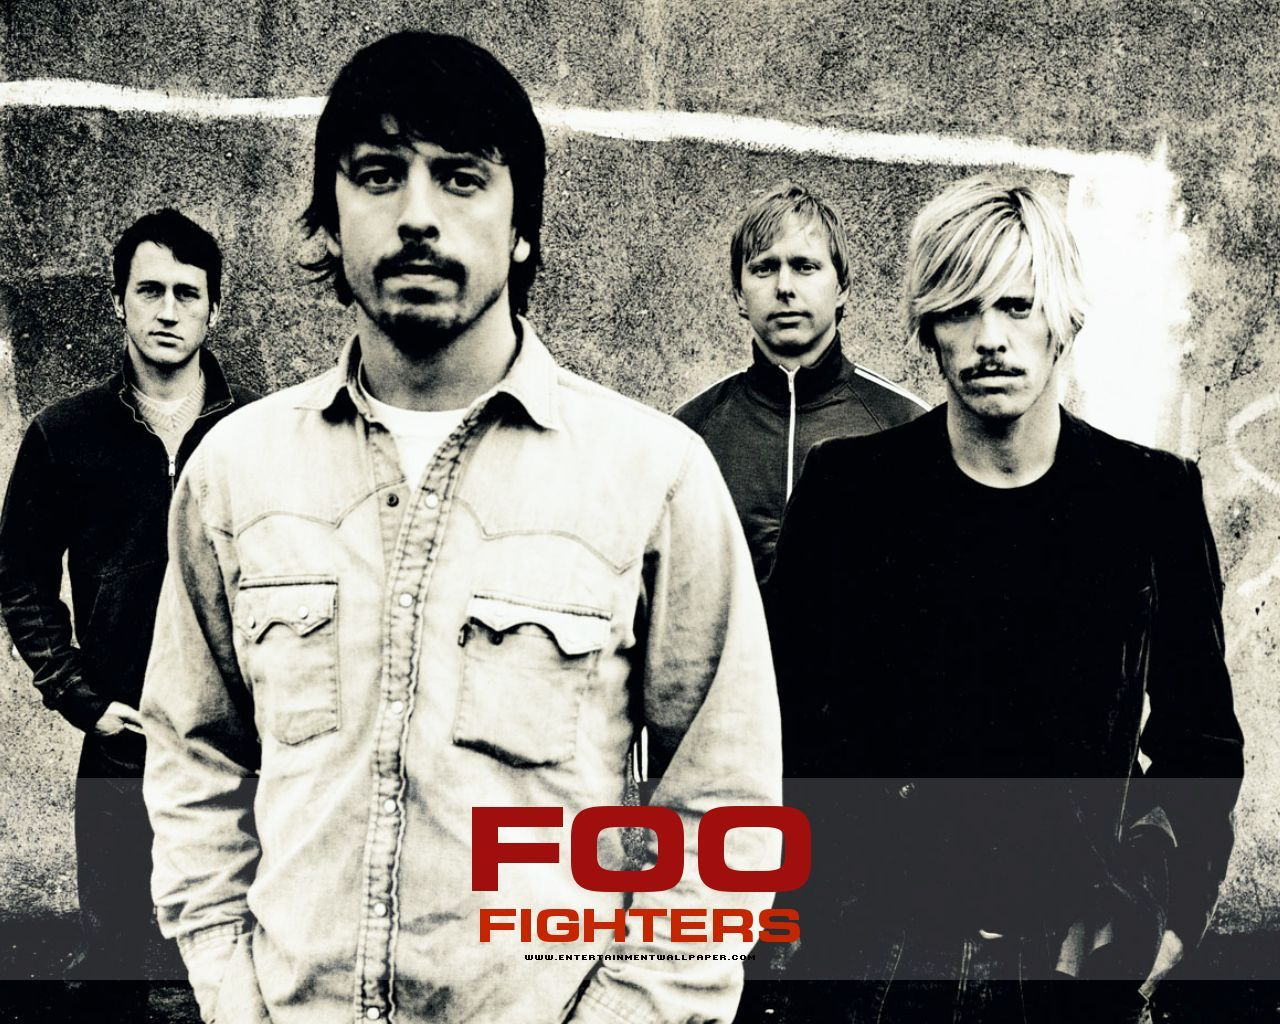 foo fighters music bands HD Wallpaper